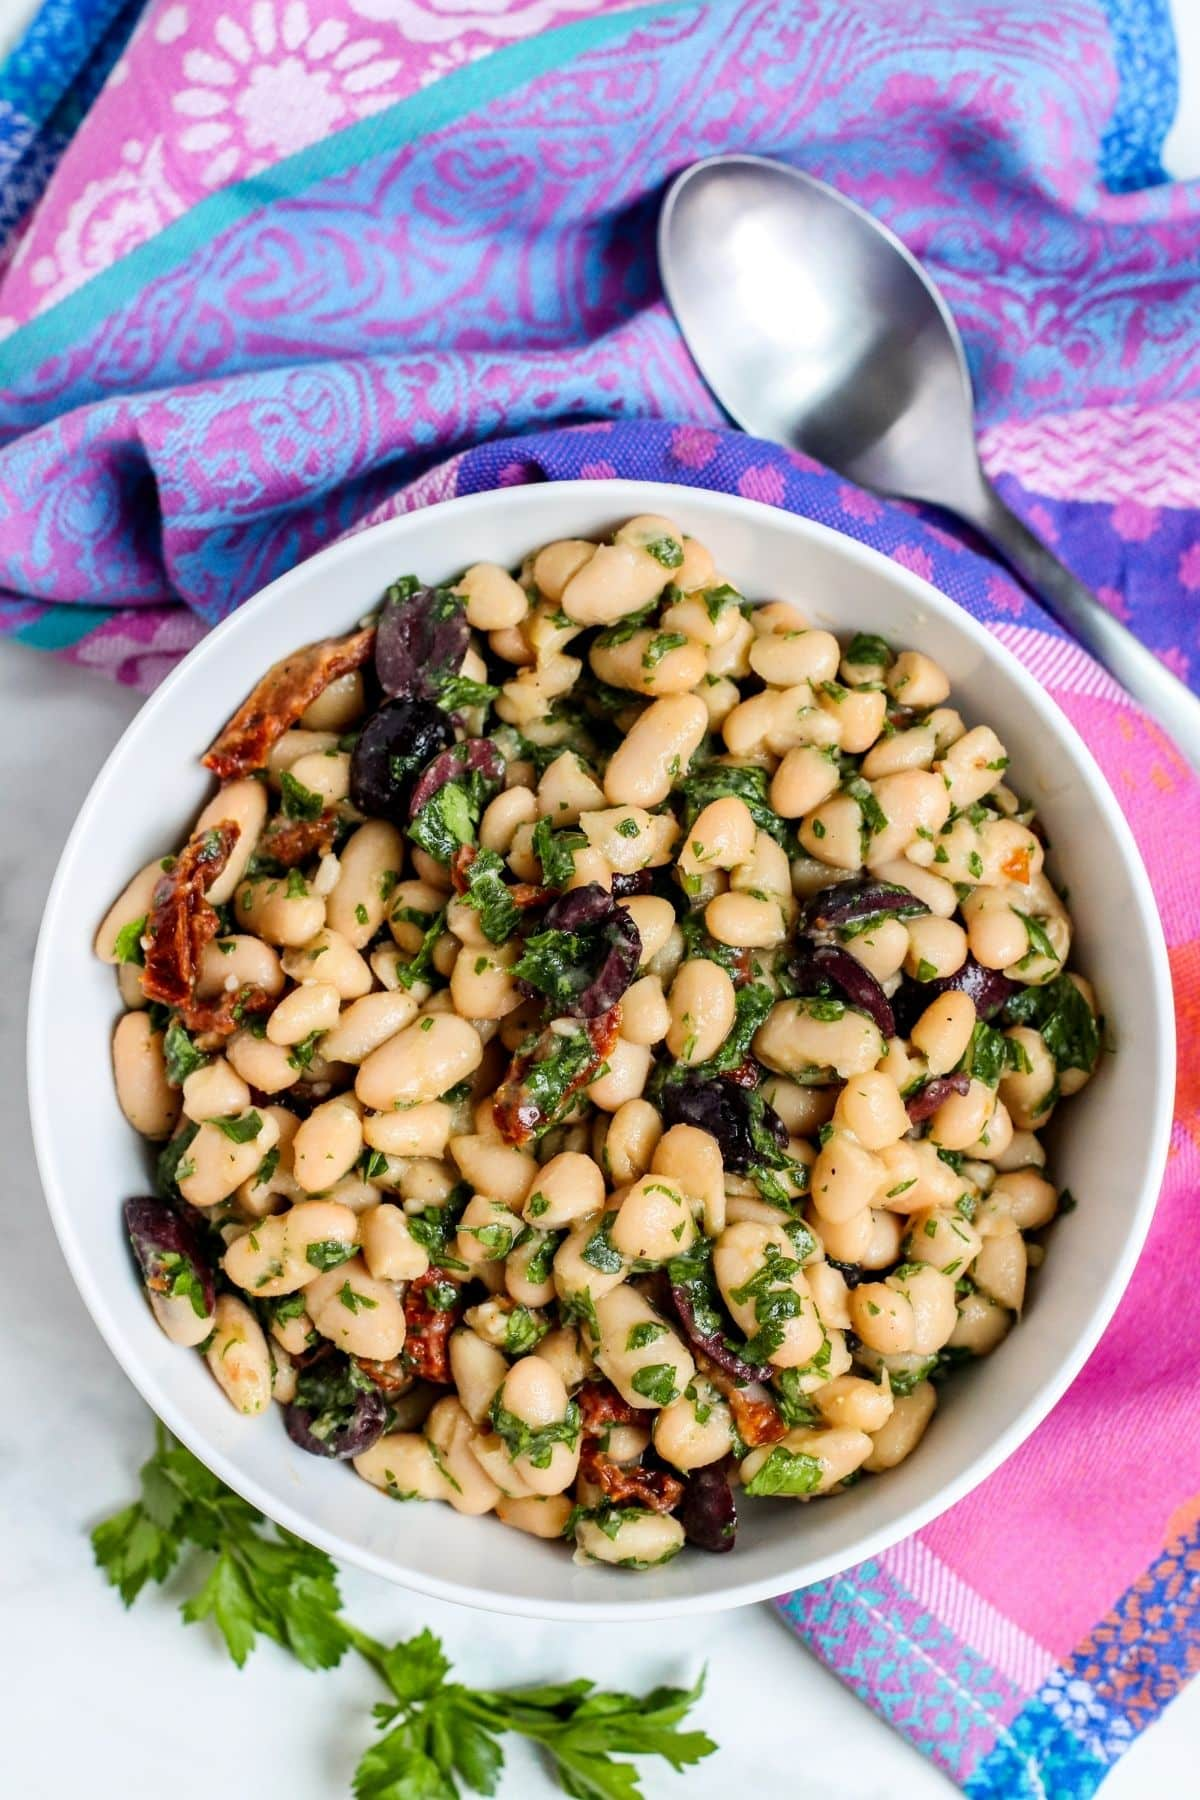 Bowl of salad with white beans, sun-dried tomatoes, olives, and parsley